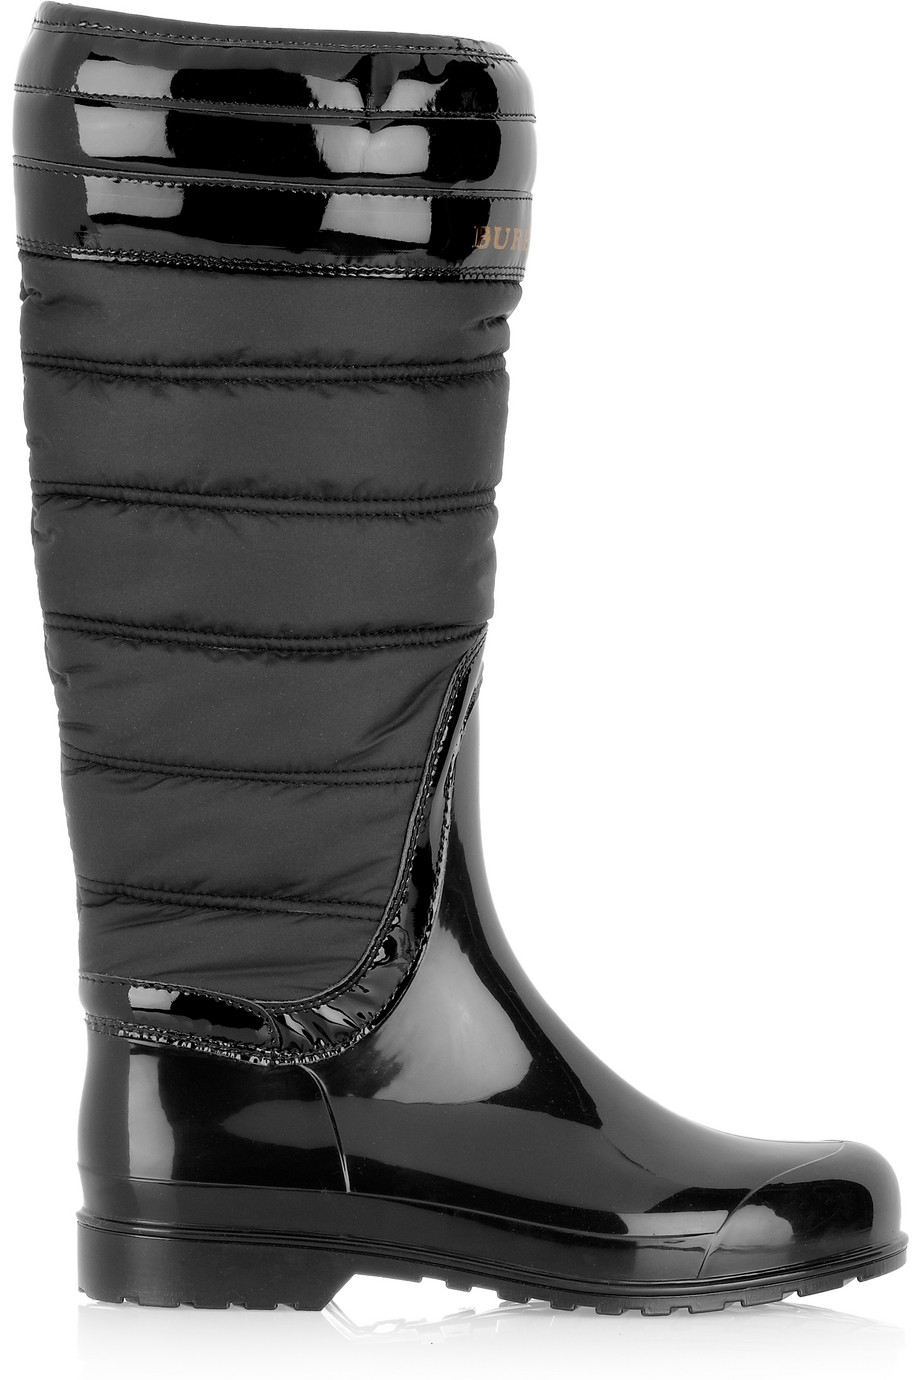 Lyst - Burberry Quilted Patent-rubber Wellington Boots in Black : burberry quilted rain boots - Adamdwight.com